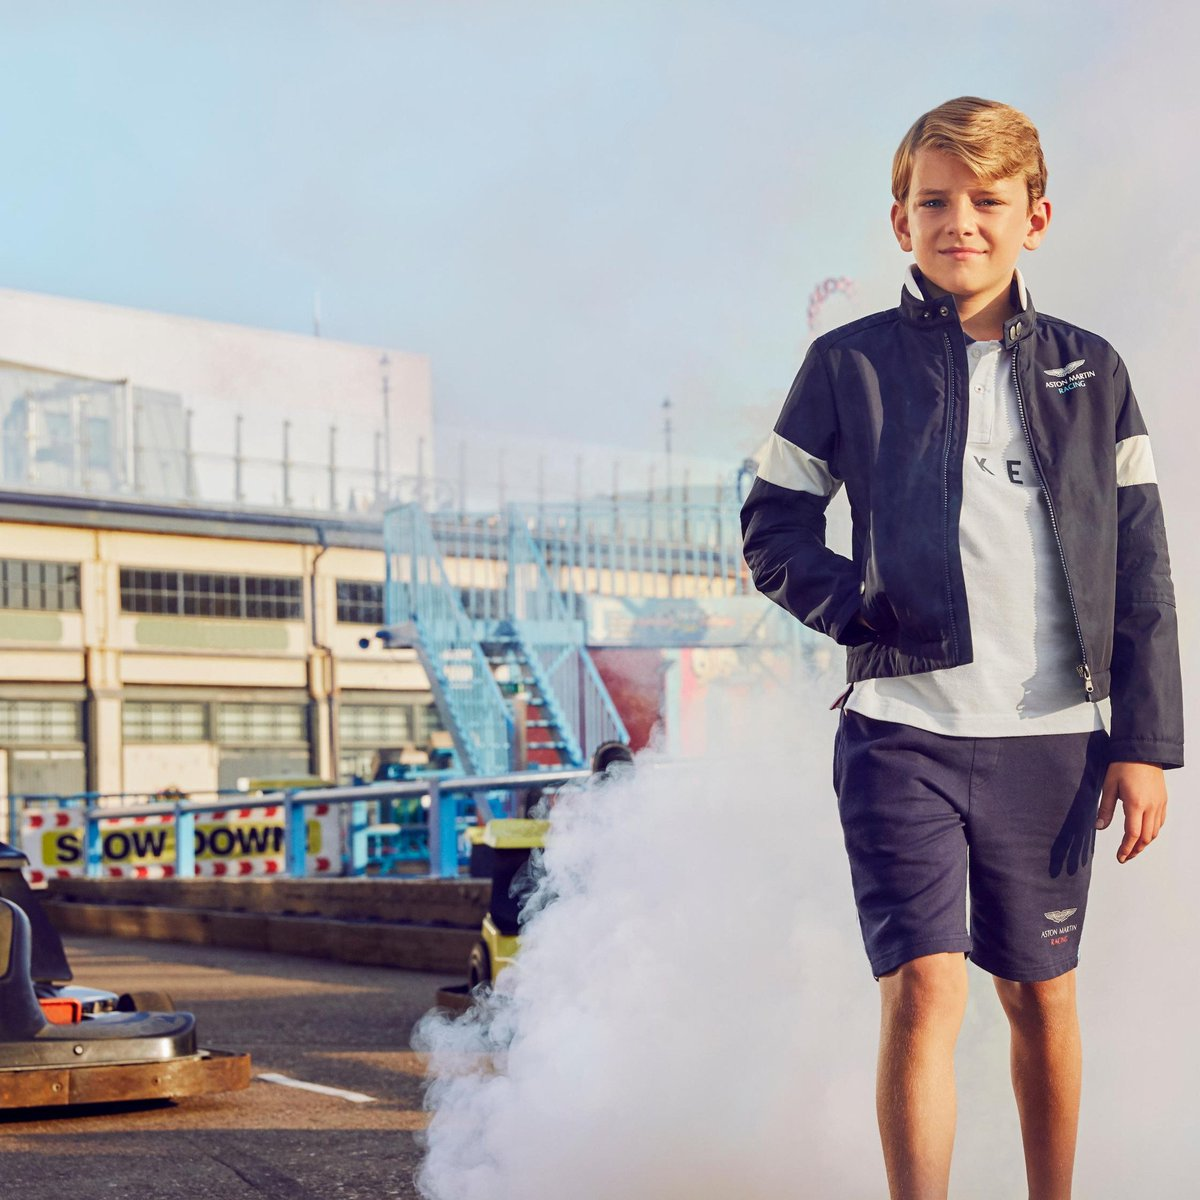 Race into our new arrivals for kids 🏁 Click here to shop: https://t.co/iTiWFD92P2 #Hackett #Kidswear #AstonMartin https://t.co/E1hF4U4rtz